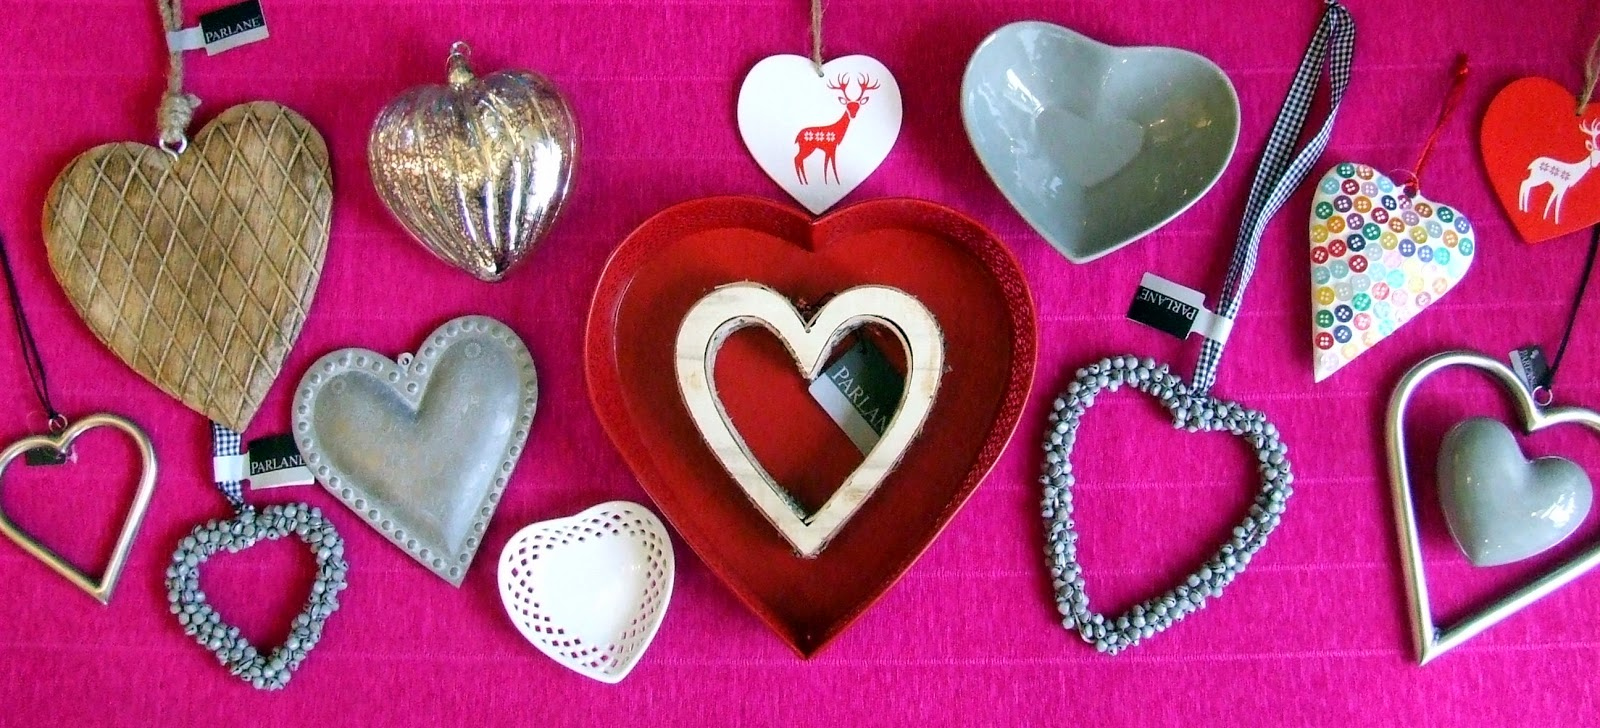 Valentine display of hearts